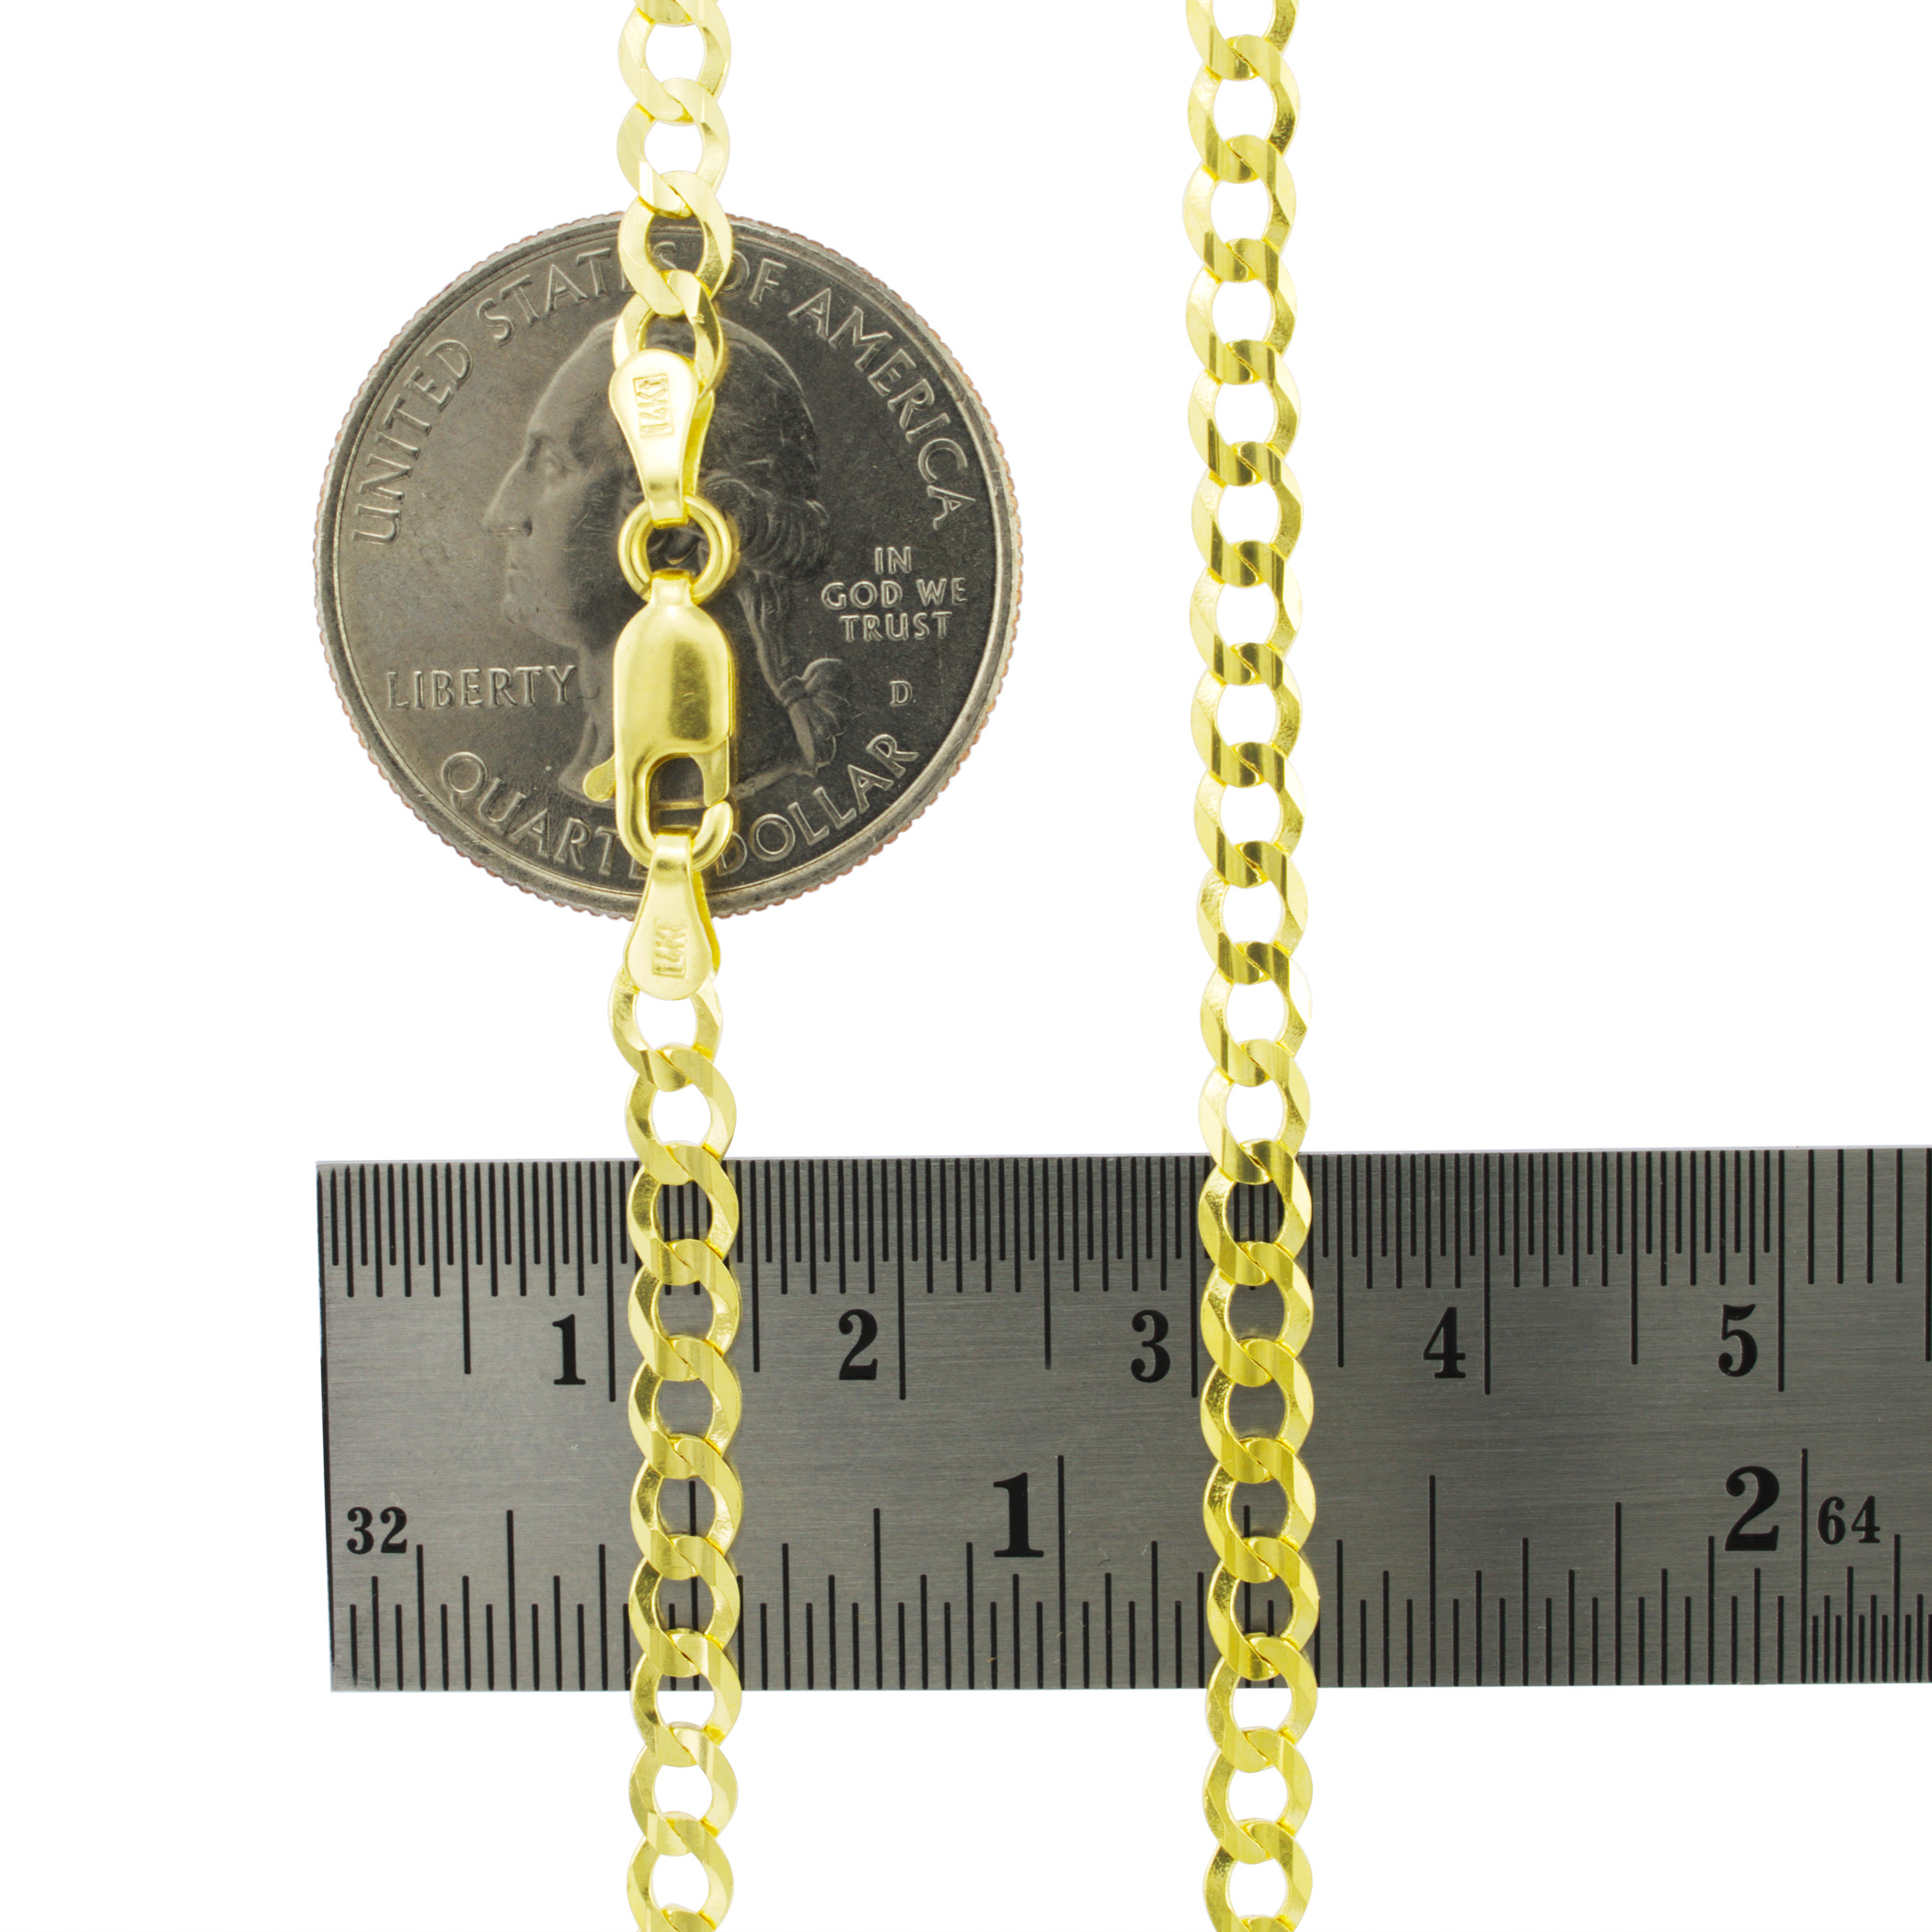 14K-Solid-Yellow-Gold-4mm-Cuban-Curb-Chain-Link-Bracelet-Lobster-Clasp-7-034-8-034-9-034 thumbnail 19